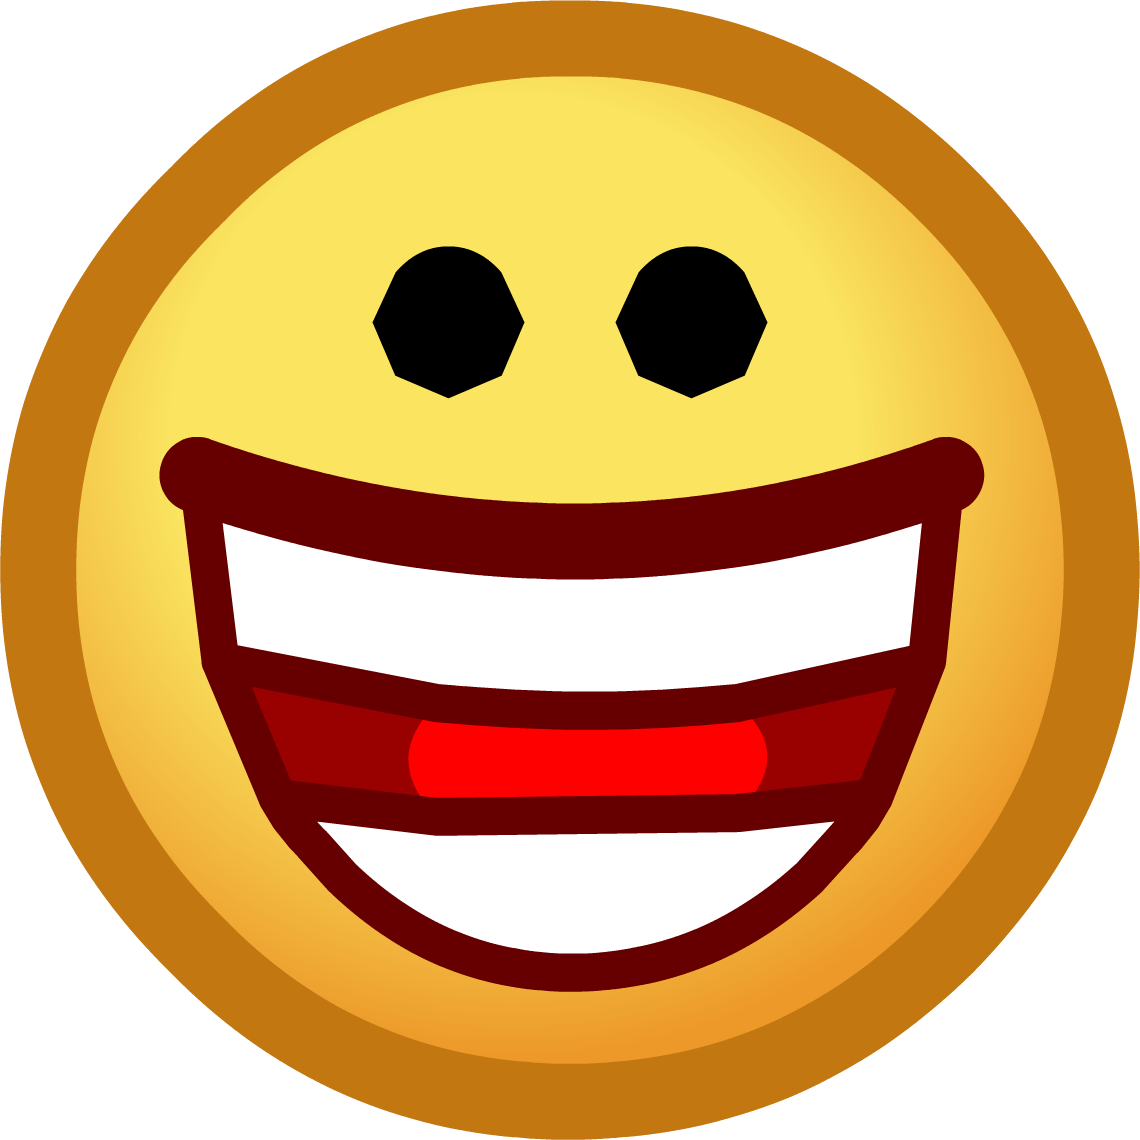 Hurt clipart emoticon. Laughing smiley face panda